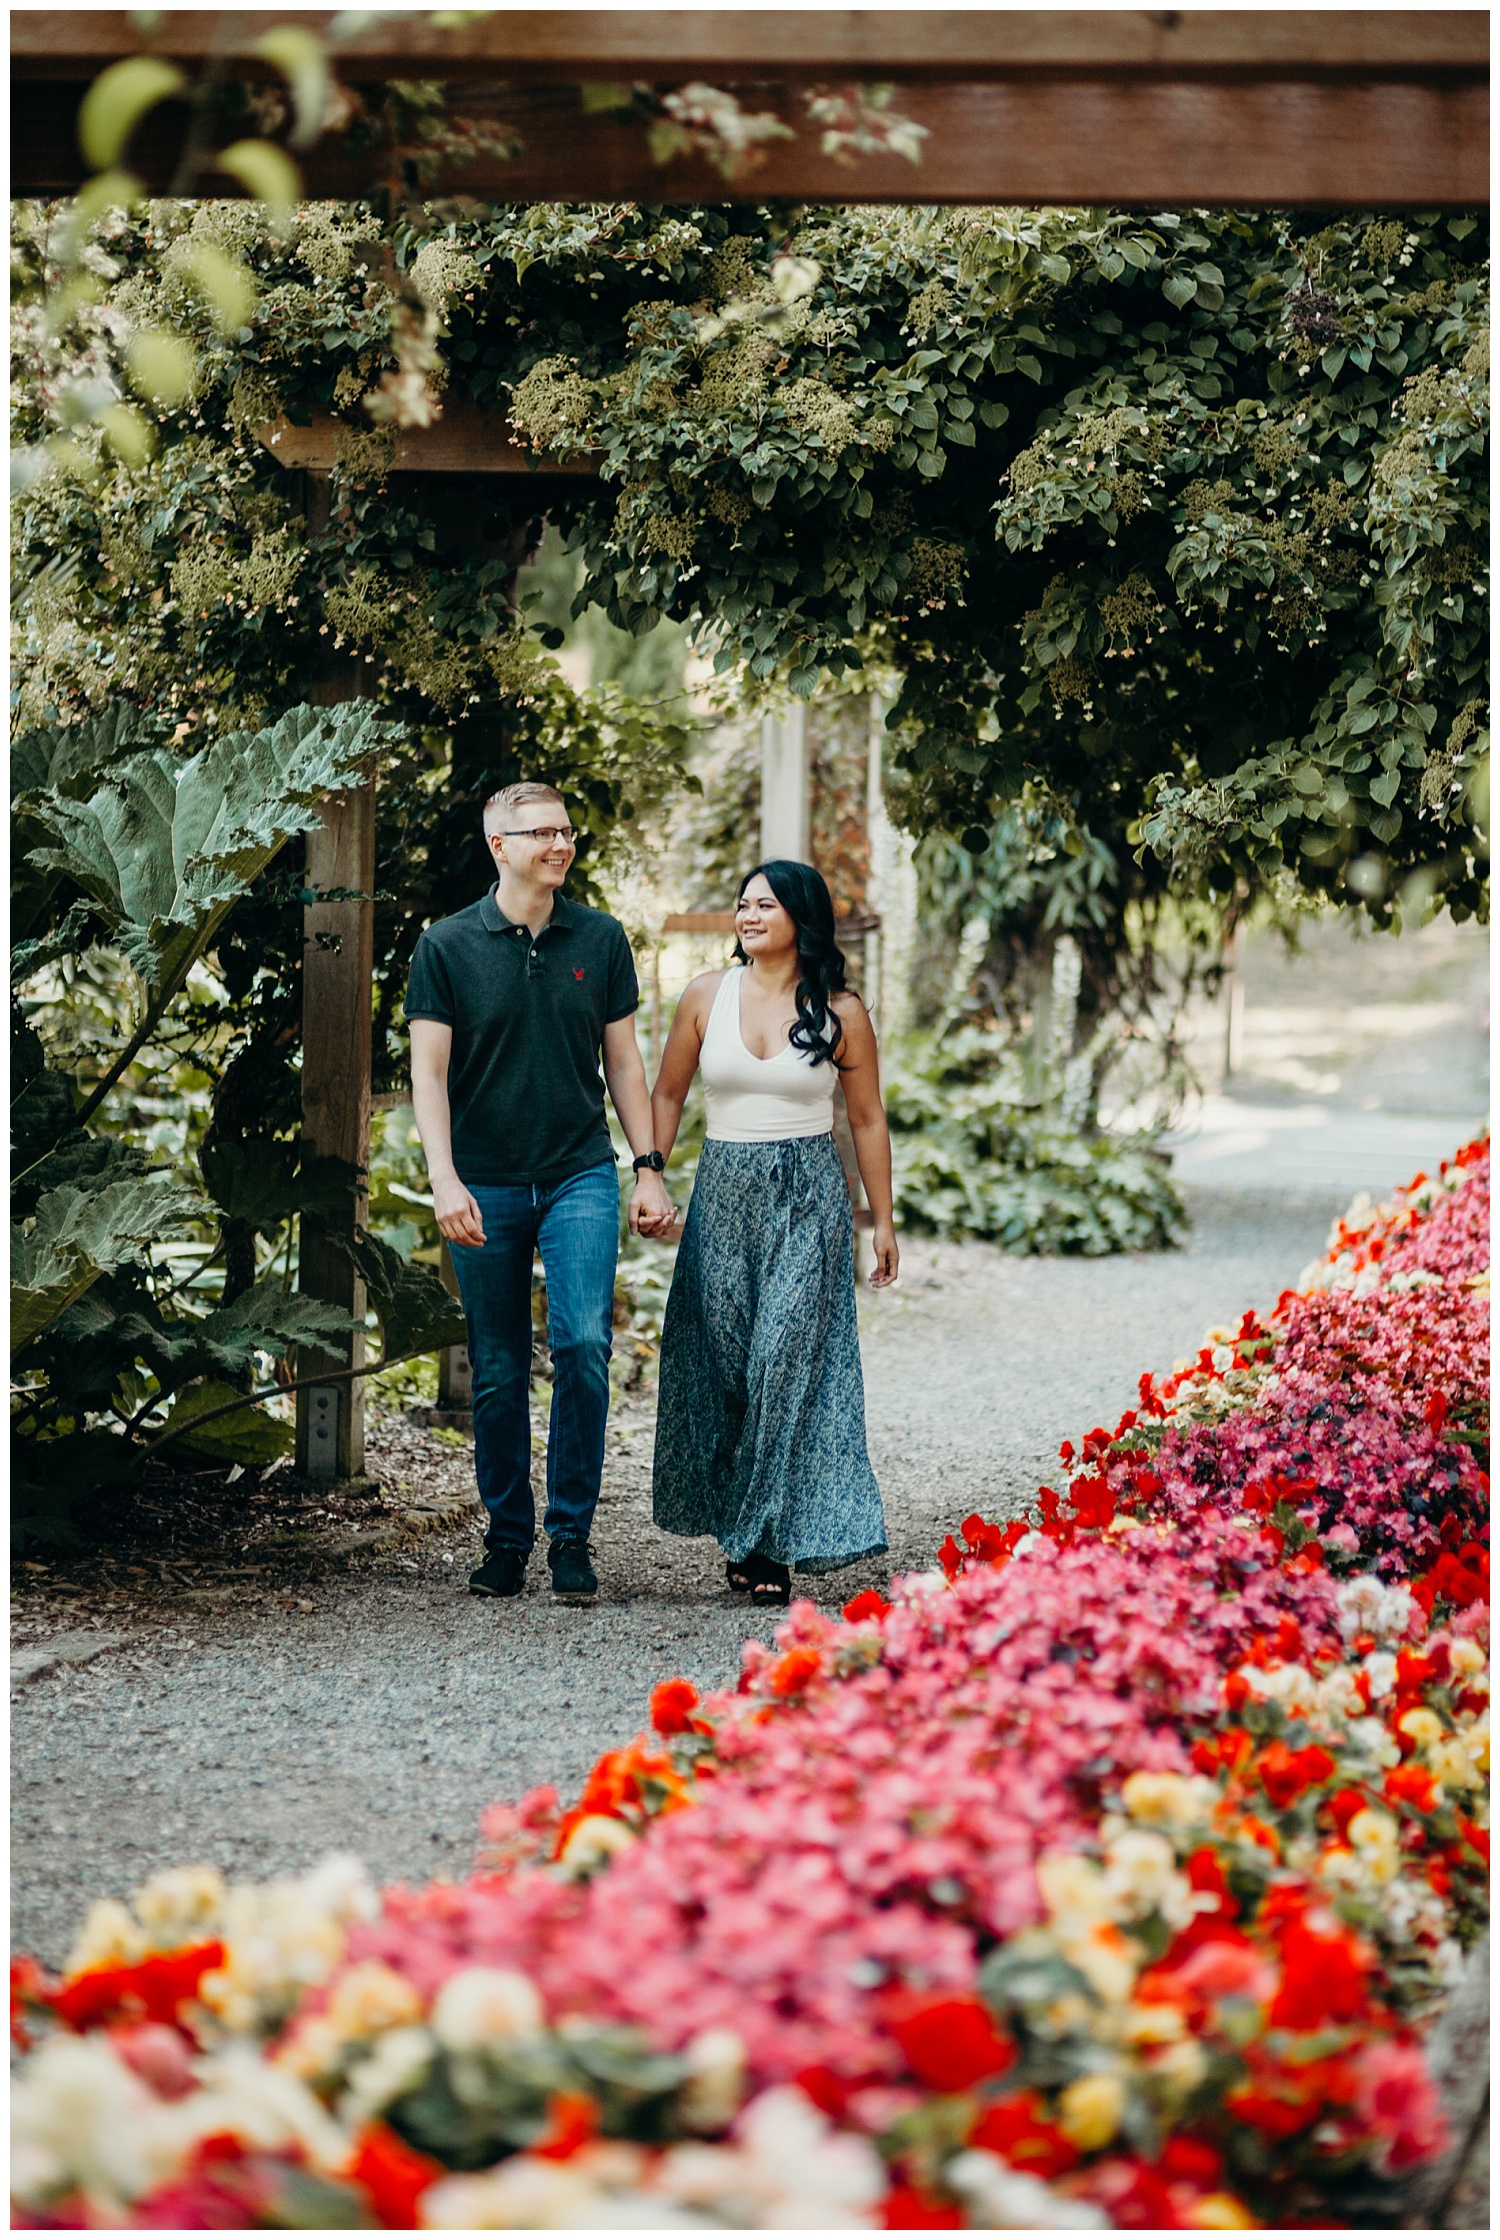 Jaynah and Kevin Point Defiance Rose Garden Owen Beach Tacoma Washington Engagement Session (2).jpg